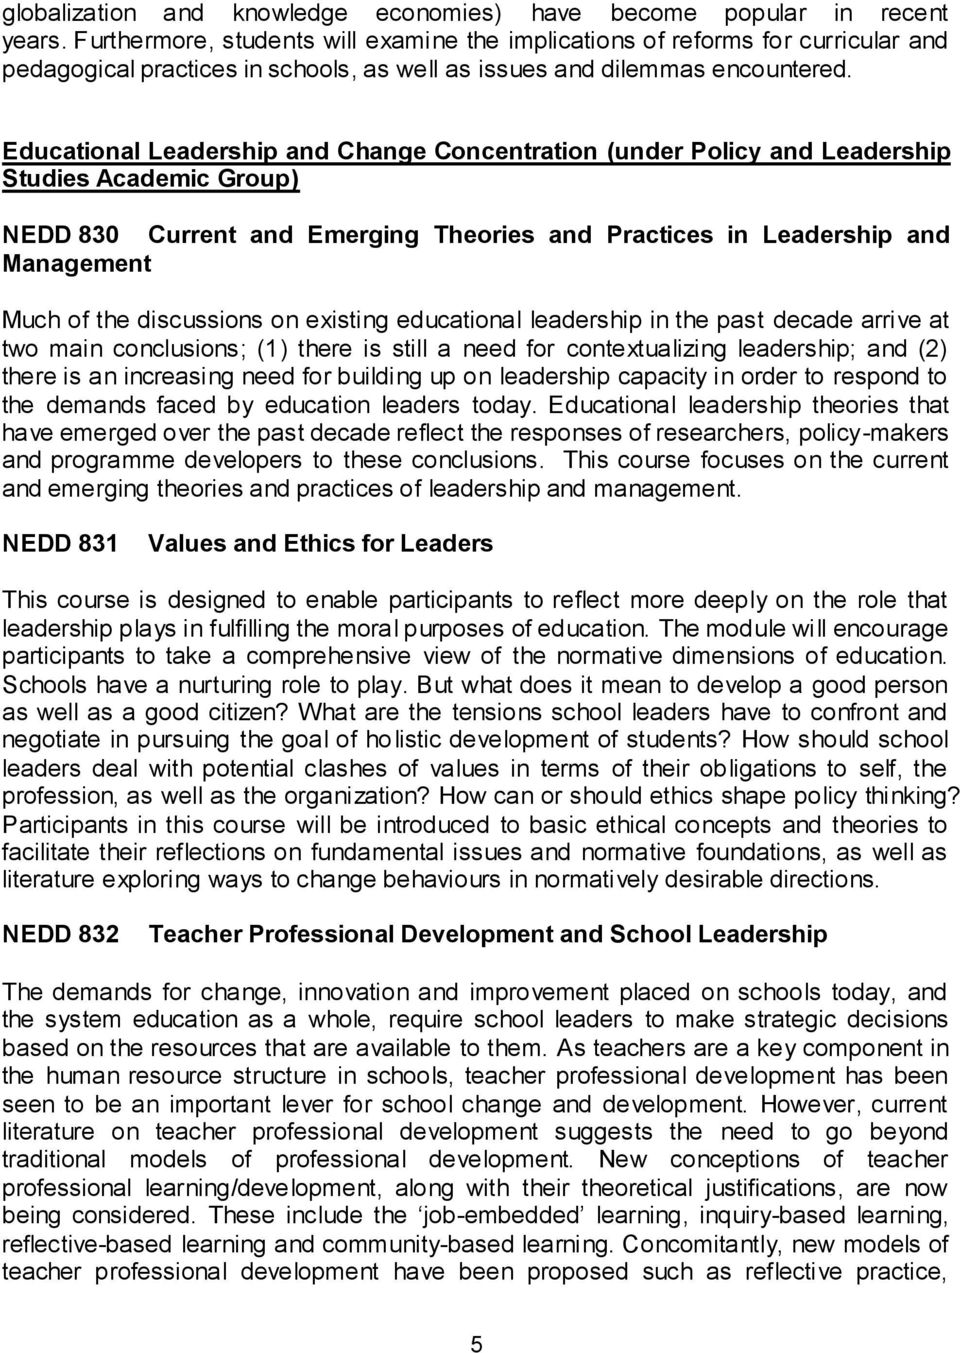 Educational Leadership and Change Concentration (under Policy and Leadership Studies Academic Group) NEDD 830 Current and Emerging Theories and Practices in Leadership and Management Much of the